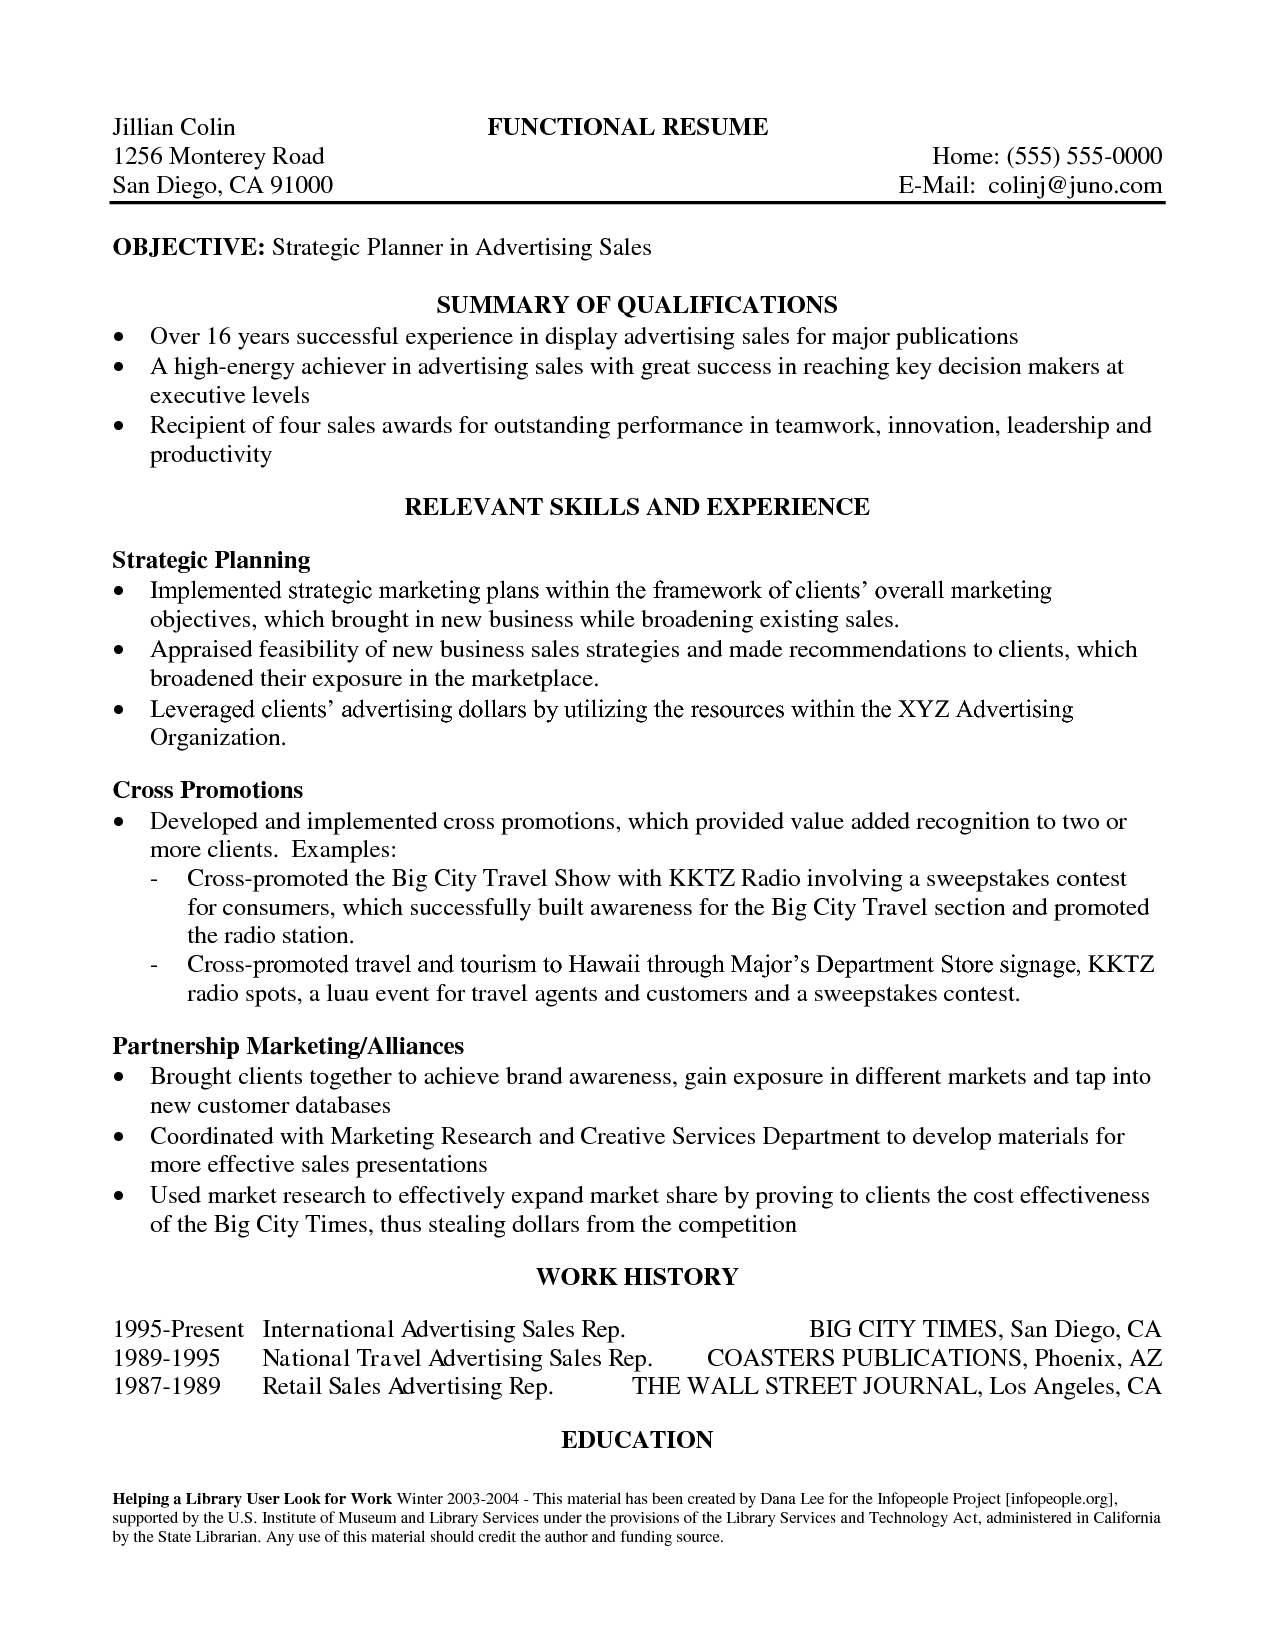 As400 Administrator Sample Resume Brilliant Resume Examples Summary  Resume Examples  Pinterest  Resume Examples